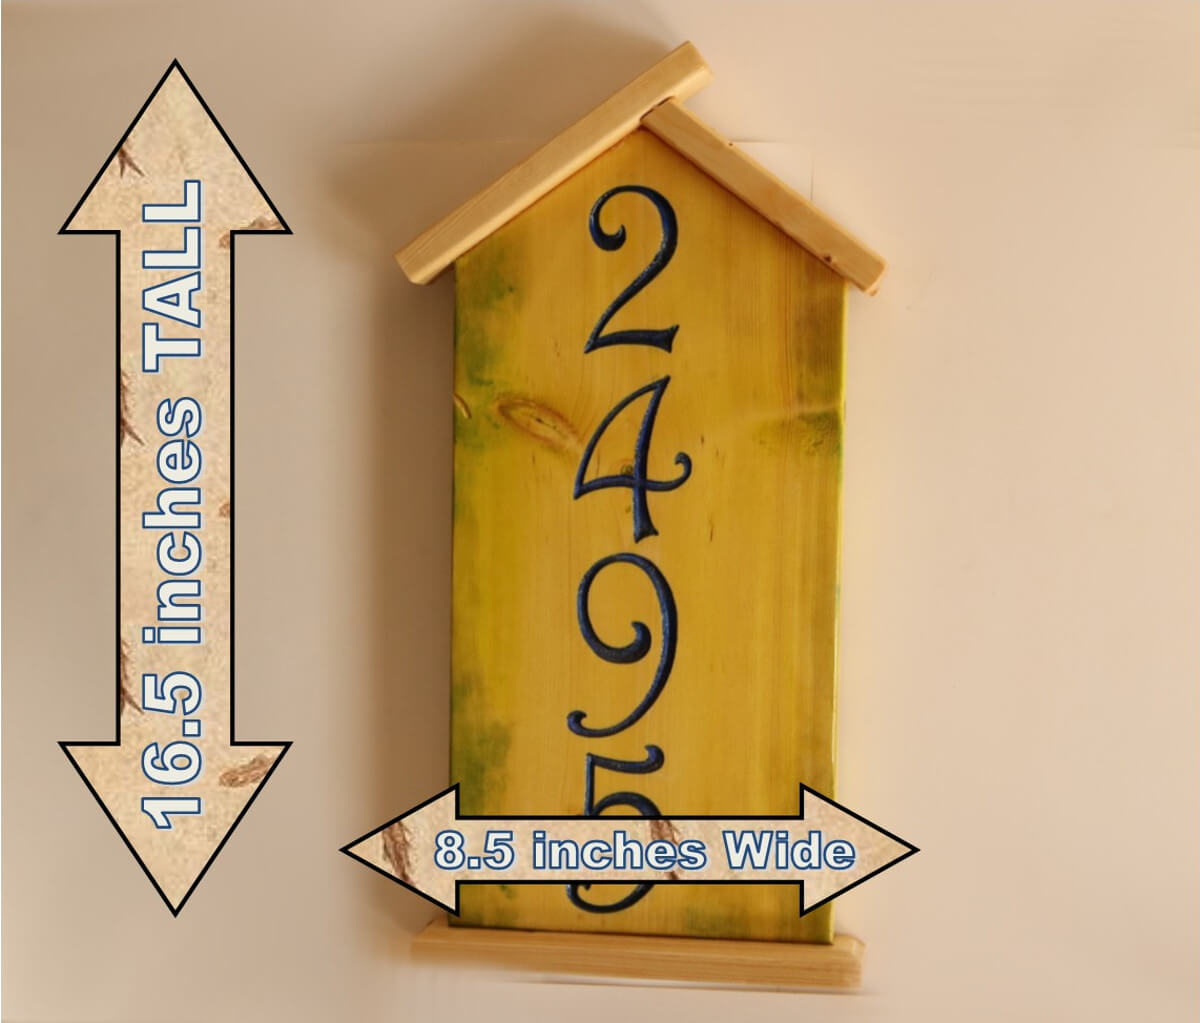 Bird House Address Number dz